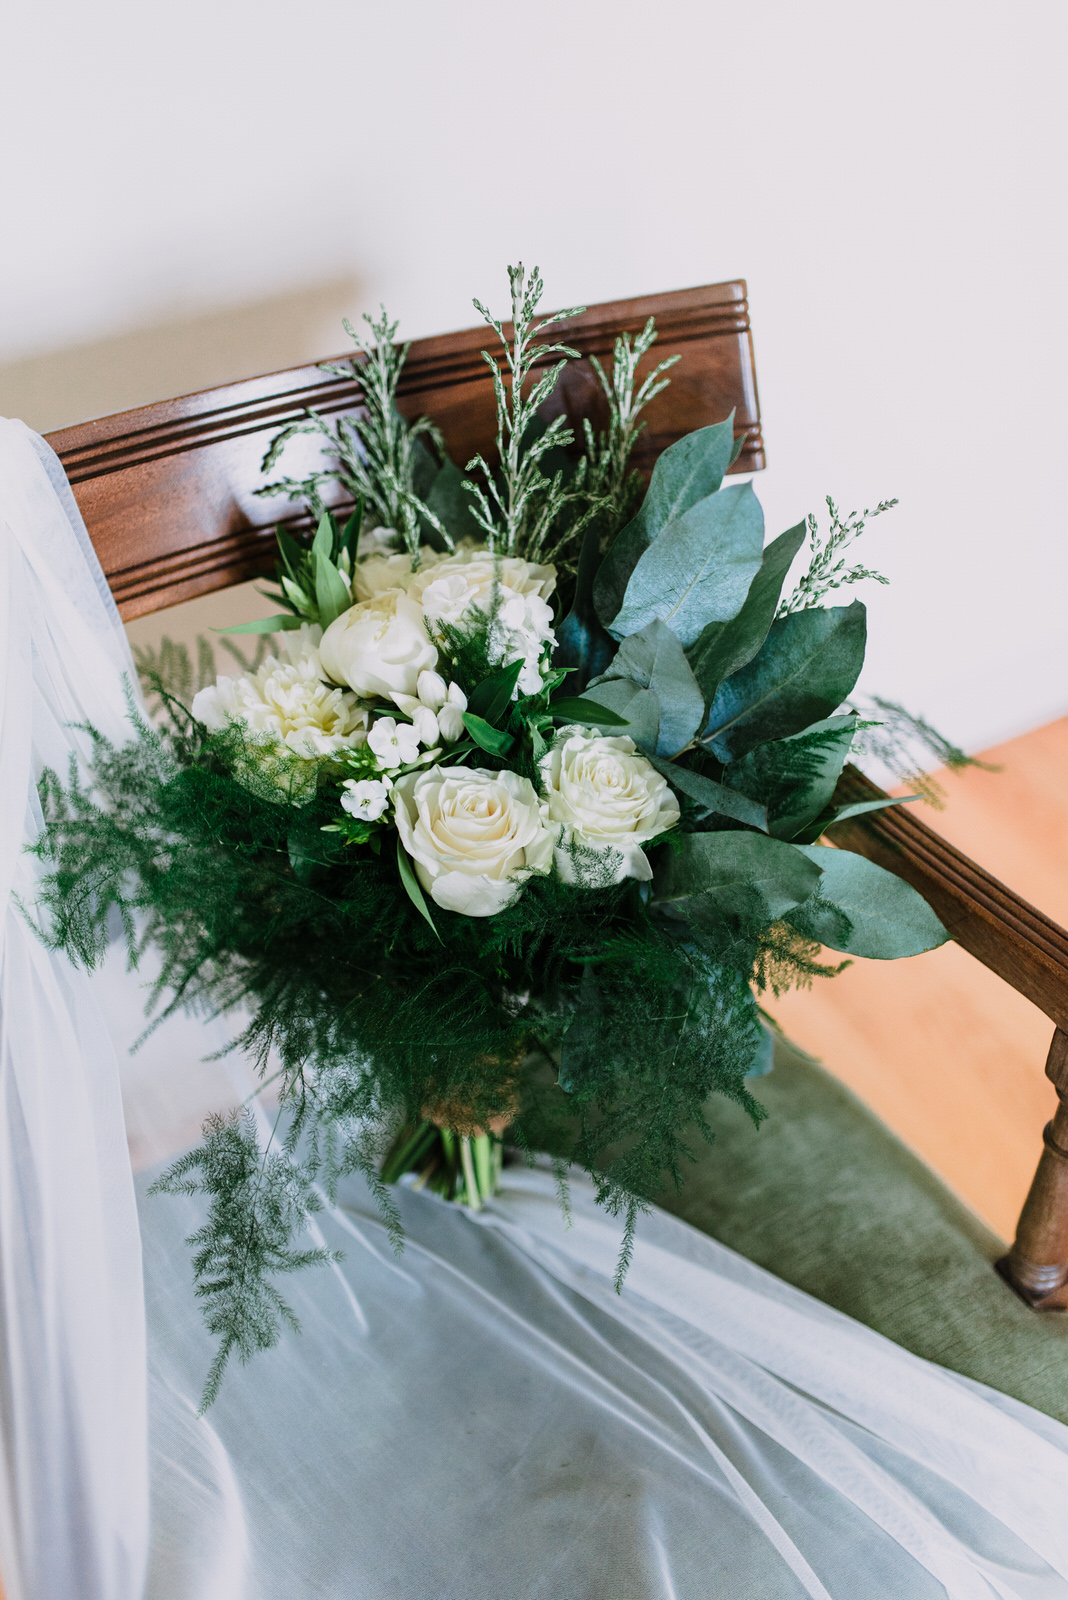 dunluce castle elopement in ireland in sage and white, white and green wedding flowers-1.jpg